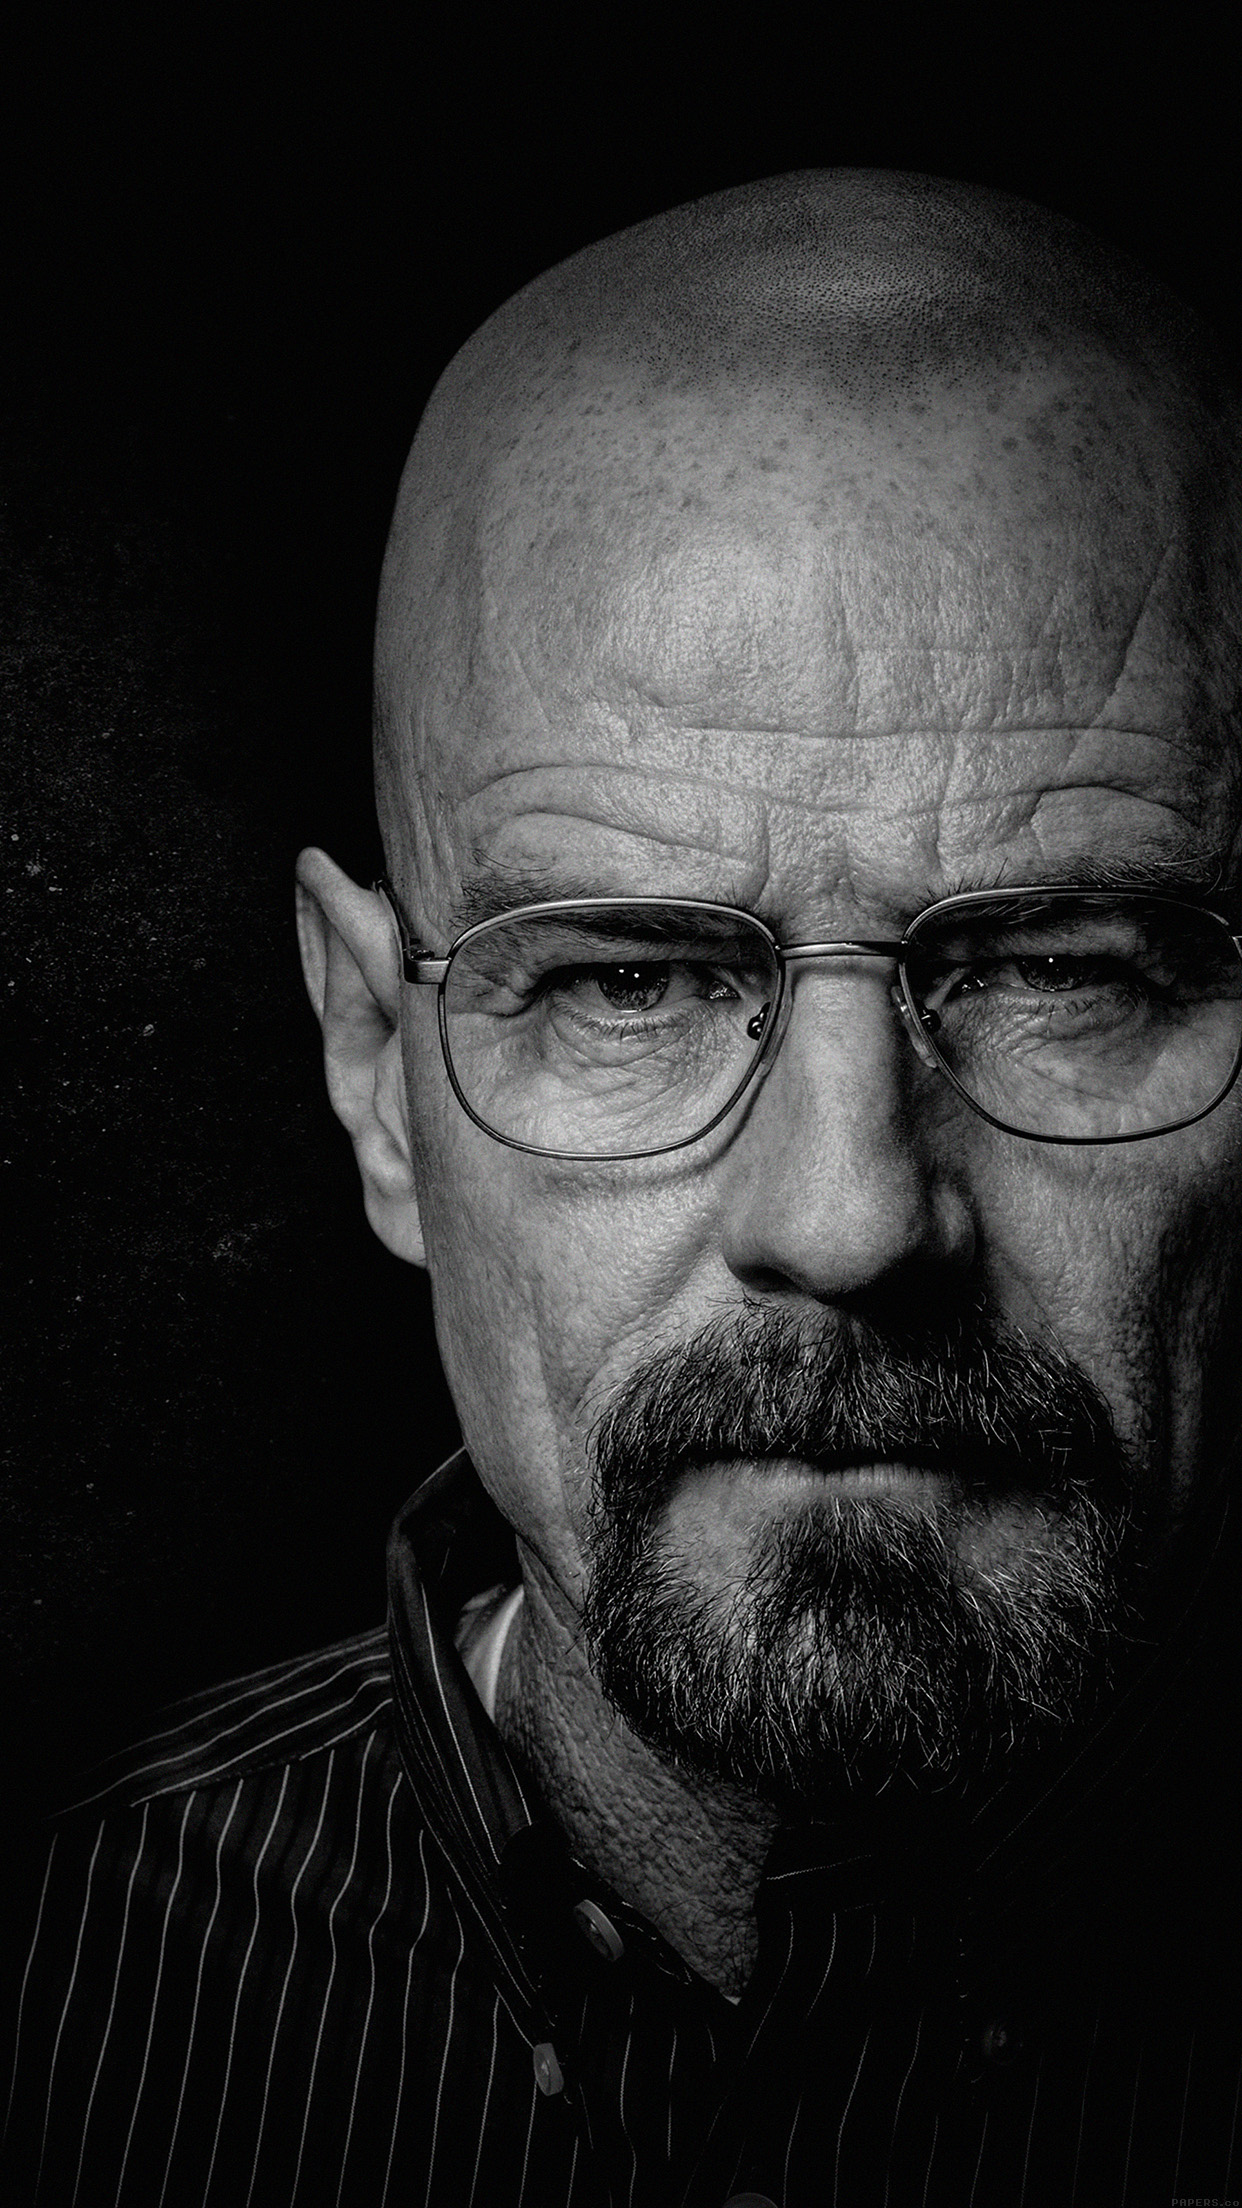 breaking bad face film art dark android wallpaper - android hd